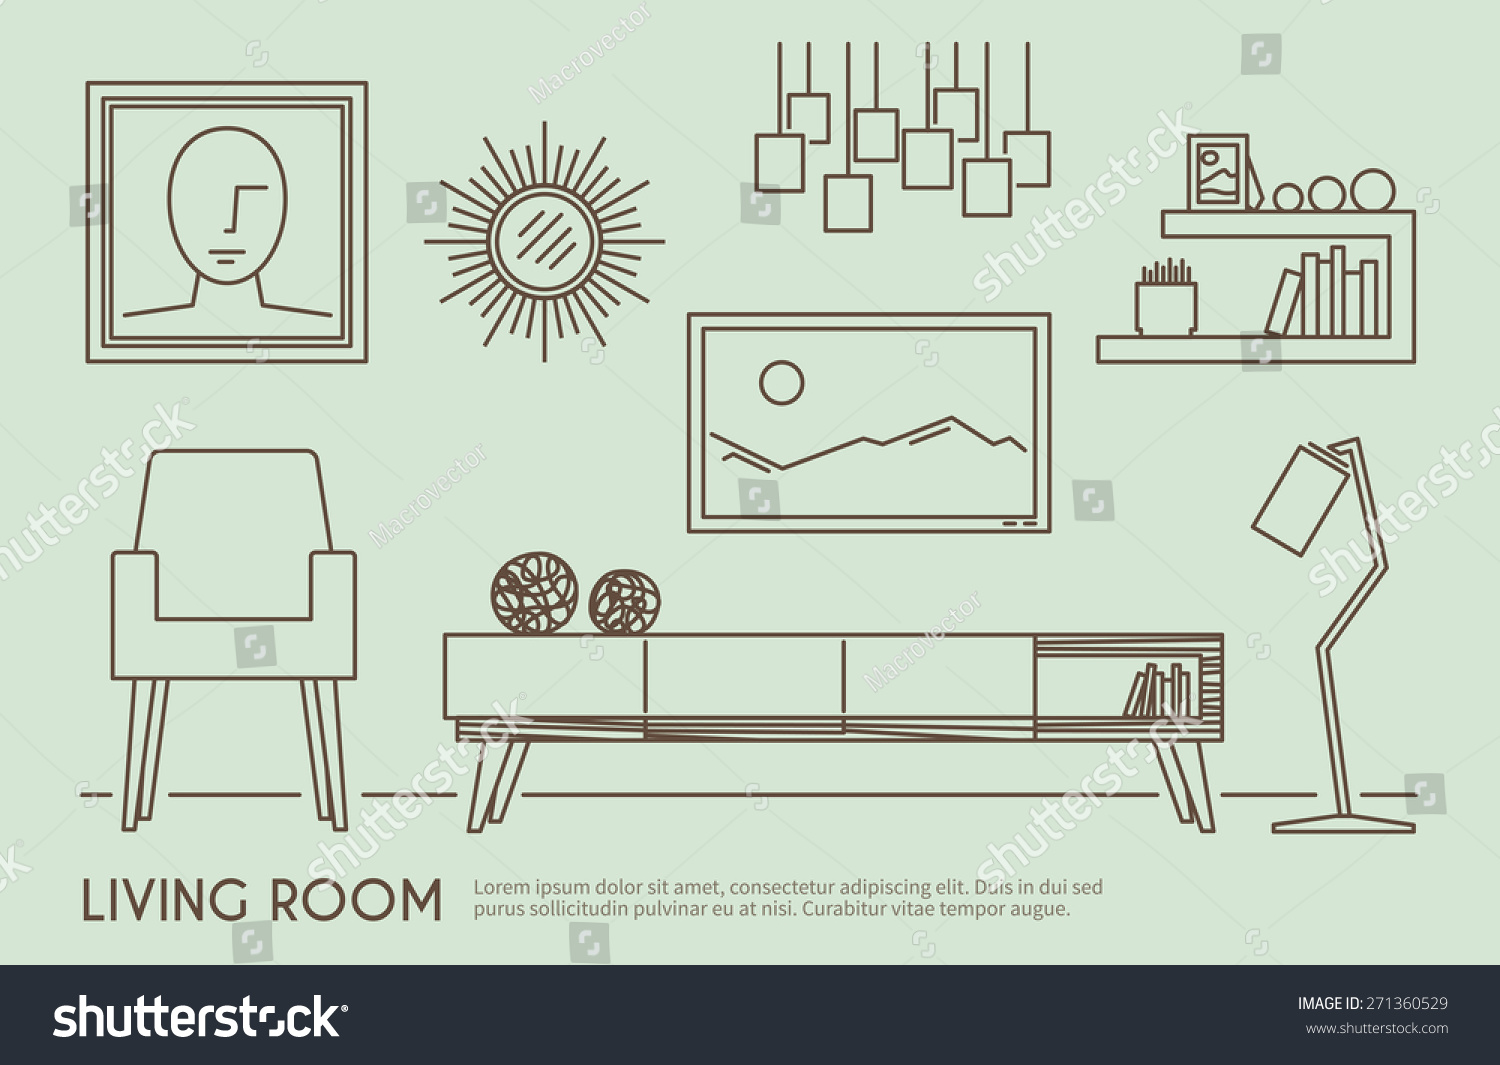 Living room interior design with outline furniture set for Interior design images vector